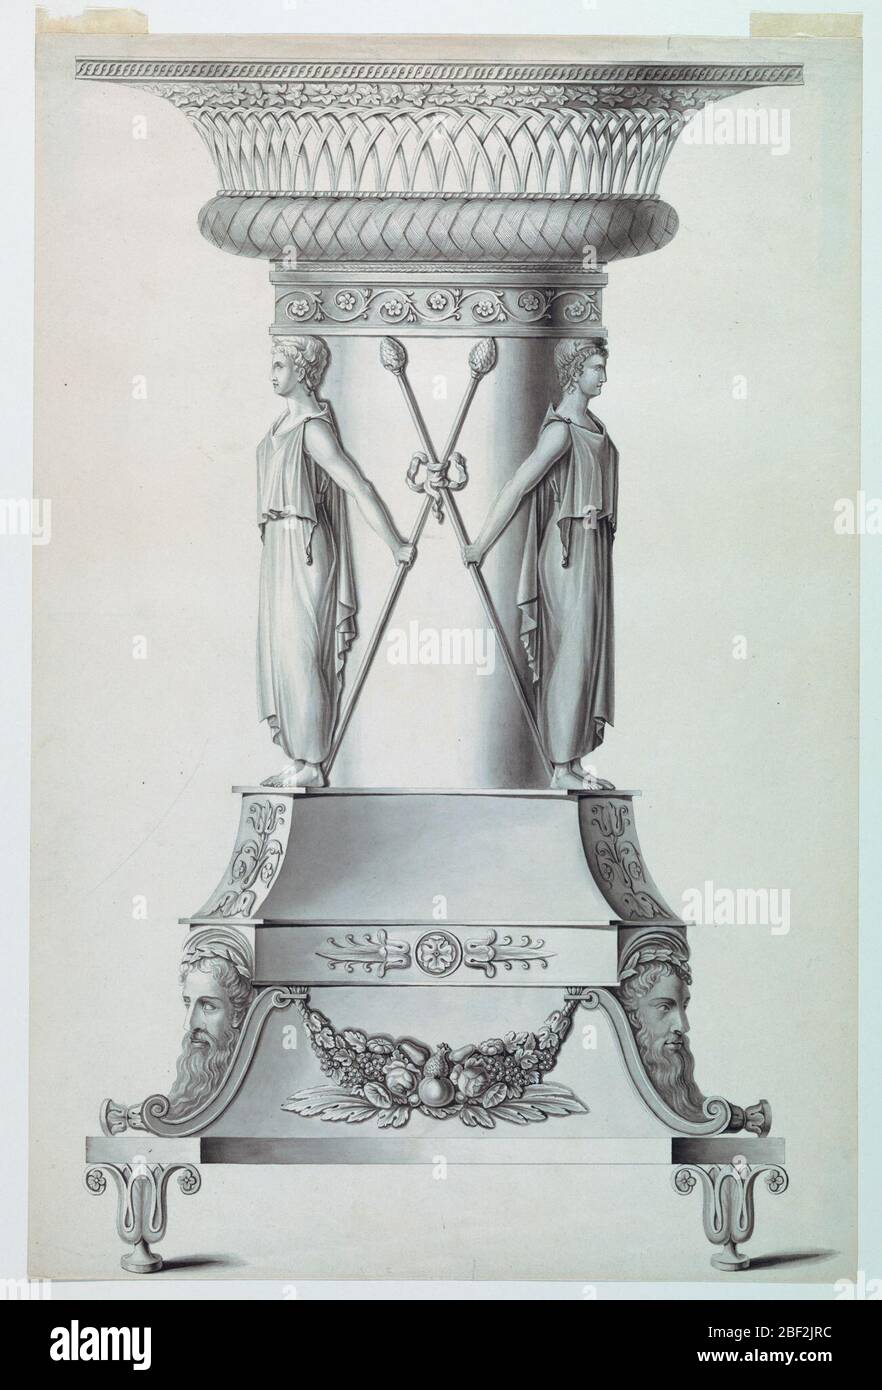 Design for a Bowl with a Stand. A pedestal of complicated design showing a fruit festoon, with bearded masks and plant motifs, is supported by lotus blossoms. A big and short column is surrounded by girls holding a thyrsus in either hand. The capital is shaped like a basket. Stock Photo